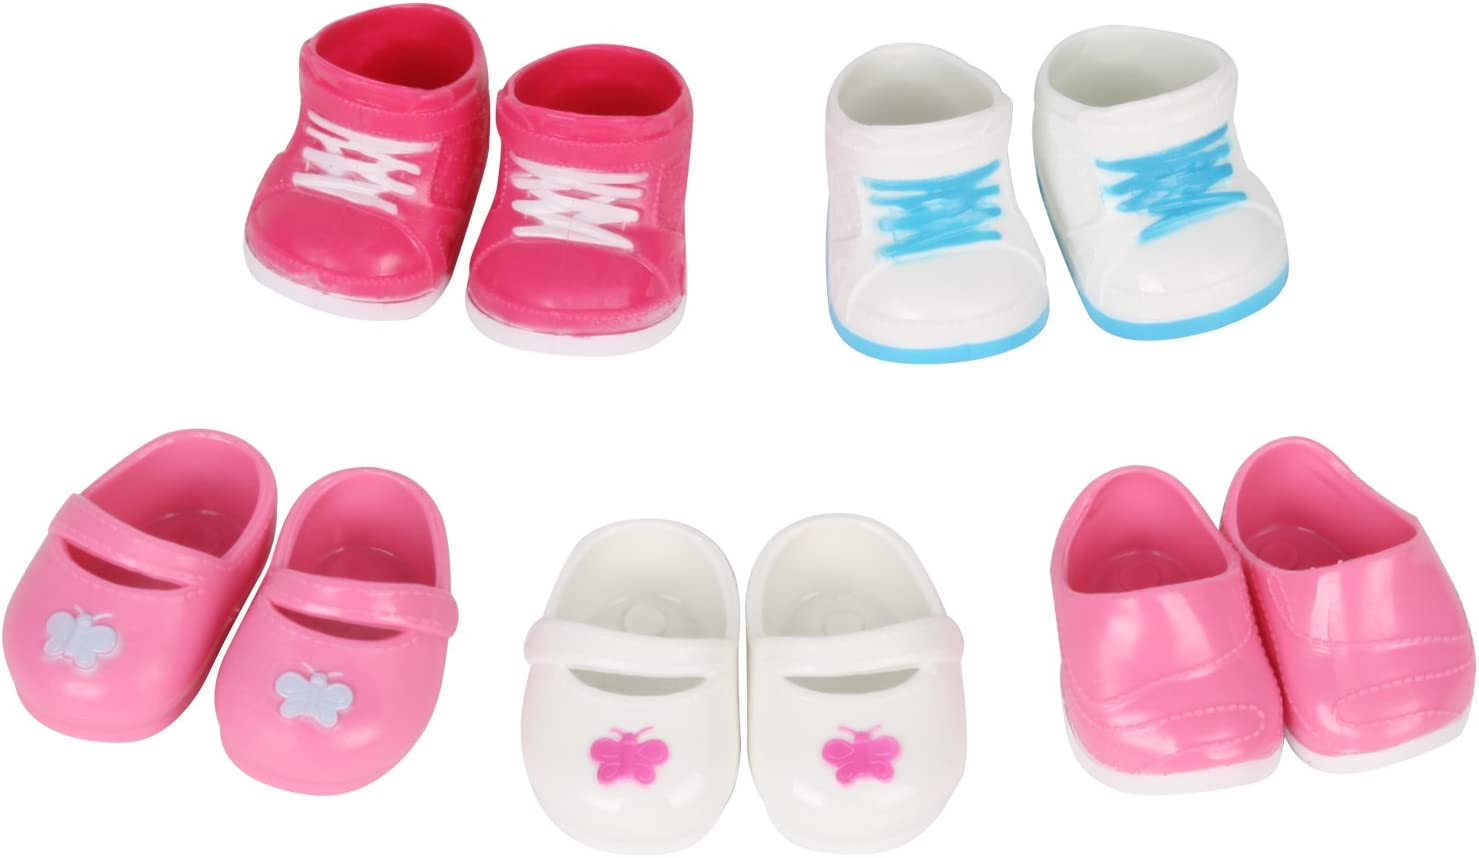 Huang Cheng Toys 5 Pairs of Shoes